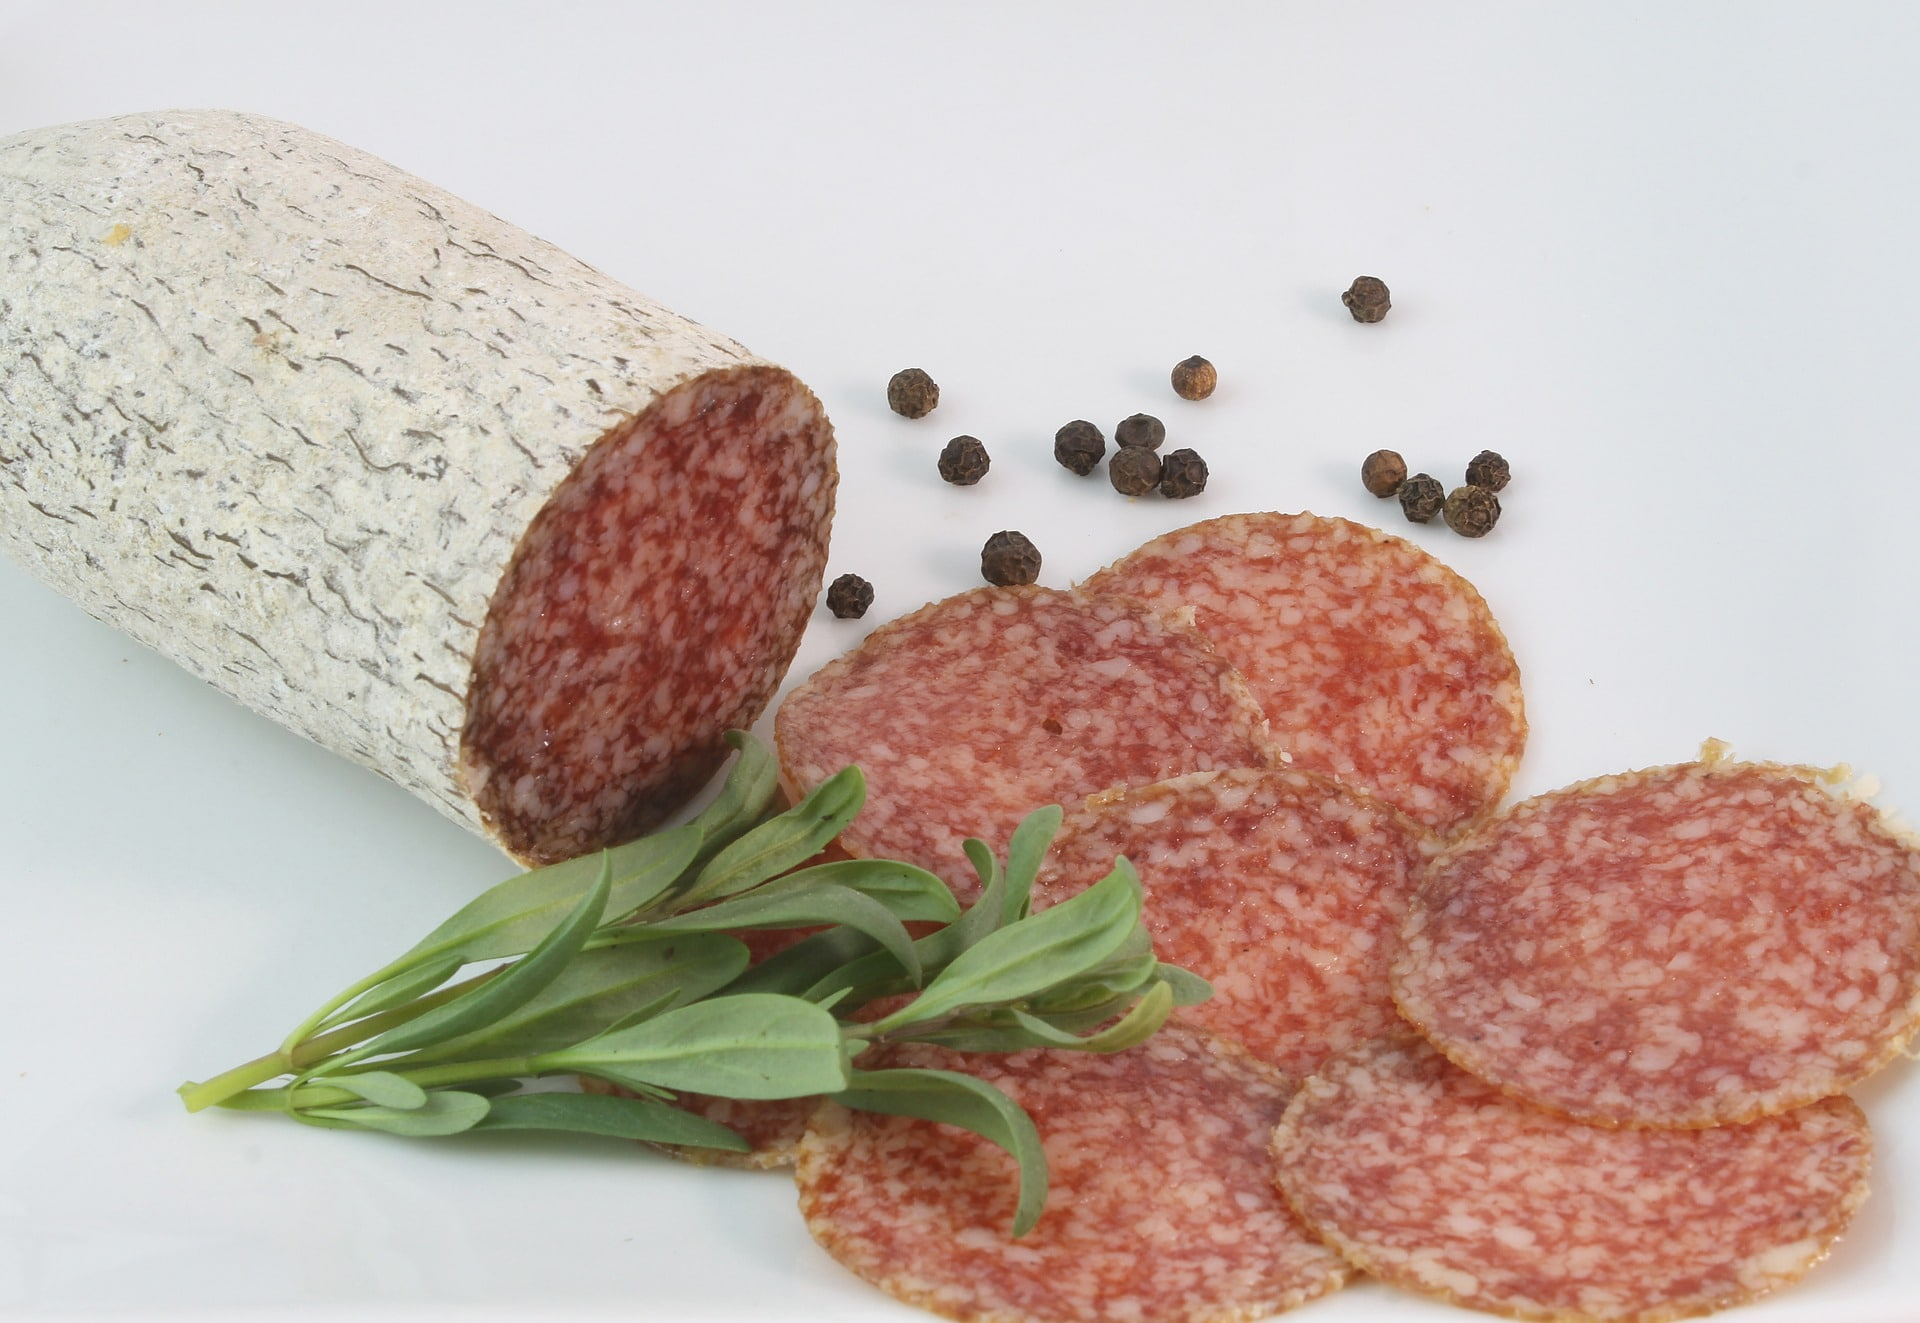 cured sausage, dry cured sausage